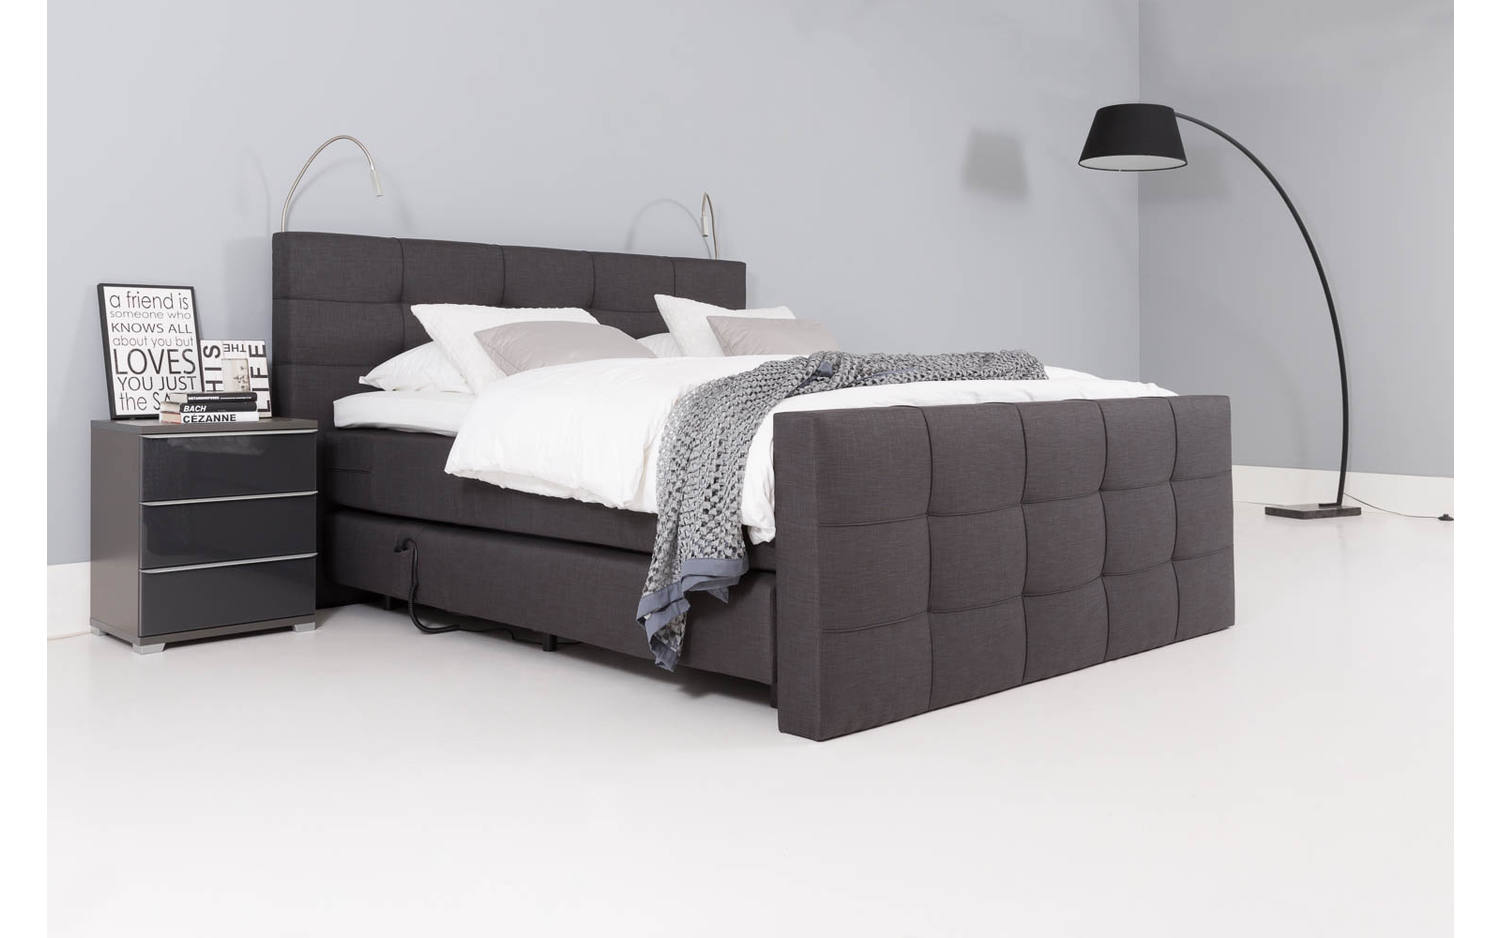 boxspring komplett calgary grau stoff kopen goossens. Black Bedroom Furniture Sets. Home Design Ideas